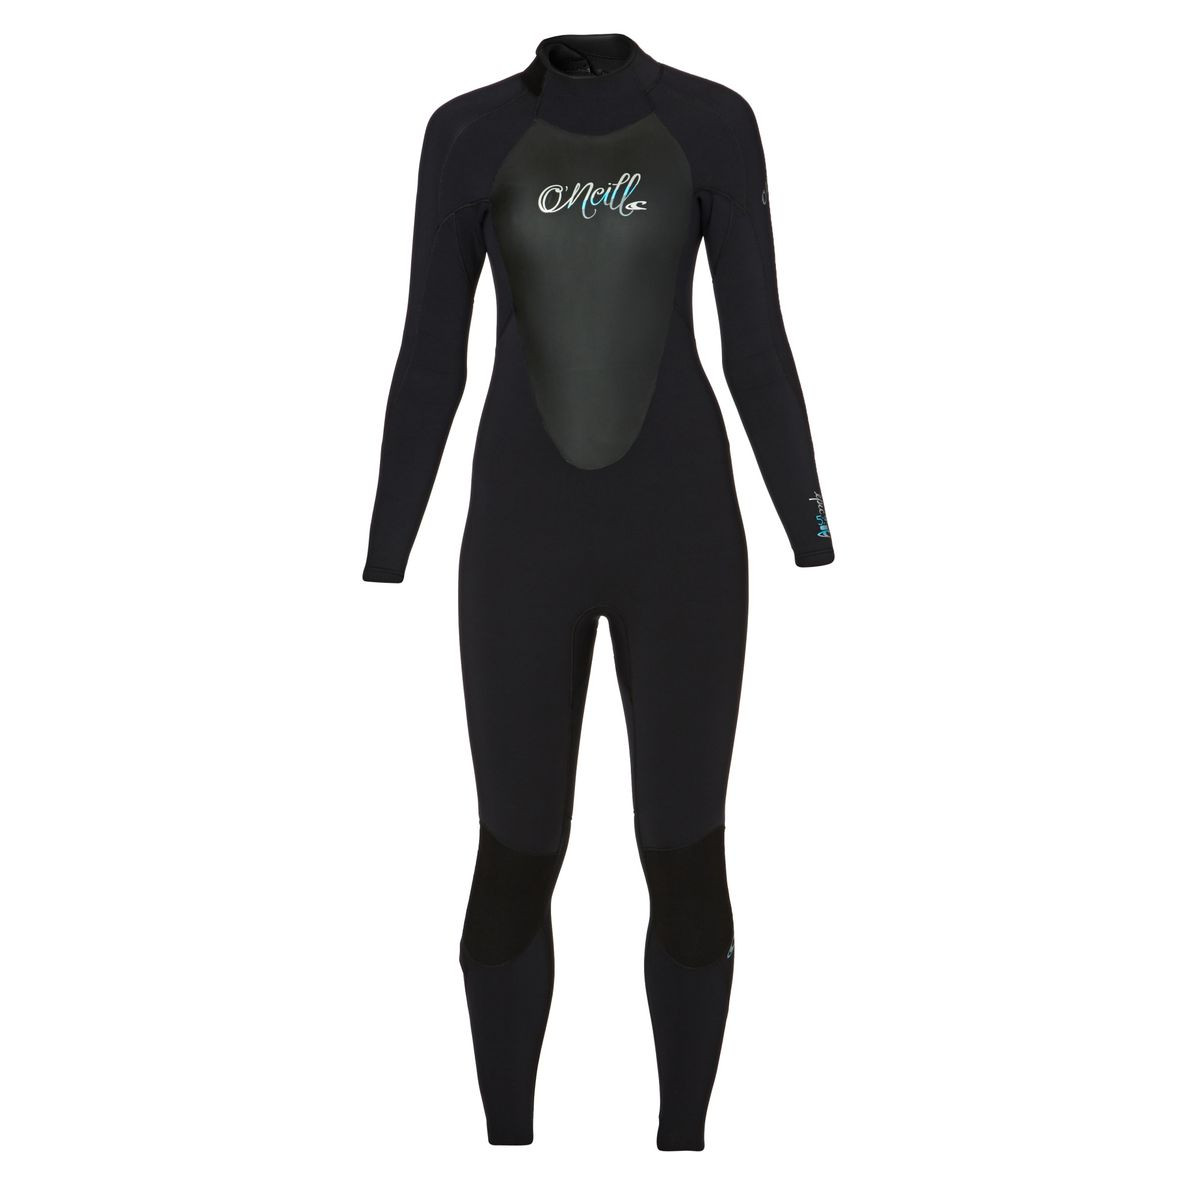 O'Neill Womens Epic 5/4mm 2017 Back Zip Wetsuit - Black/ Black/ Black